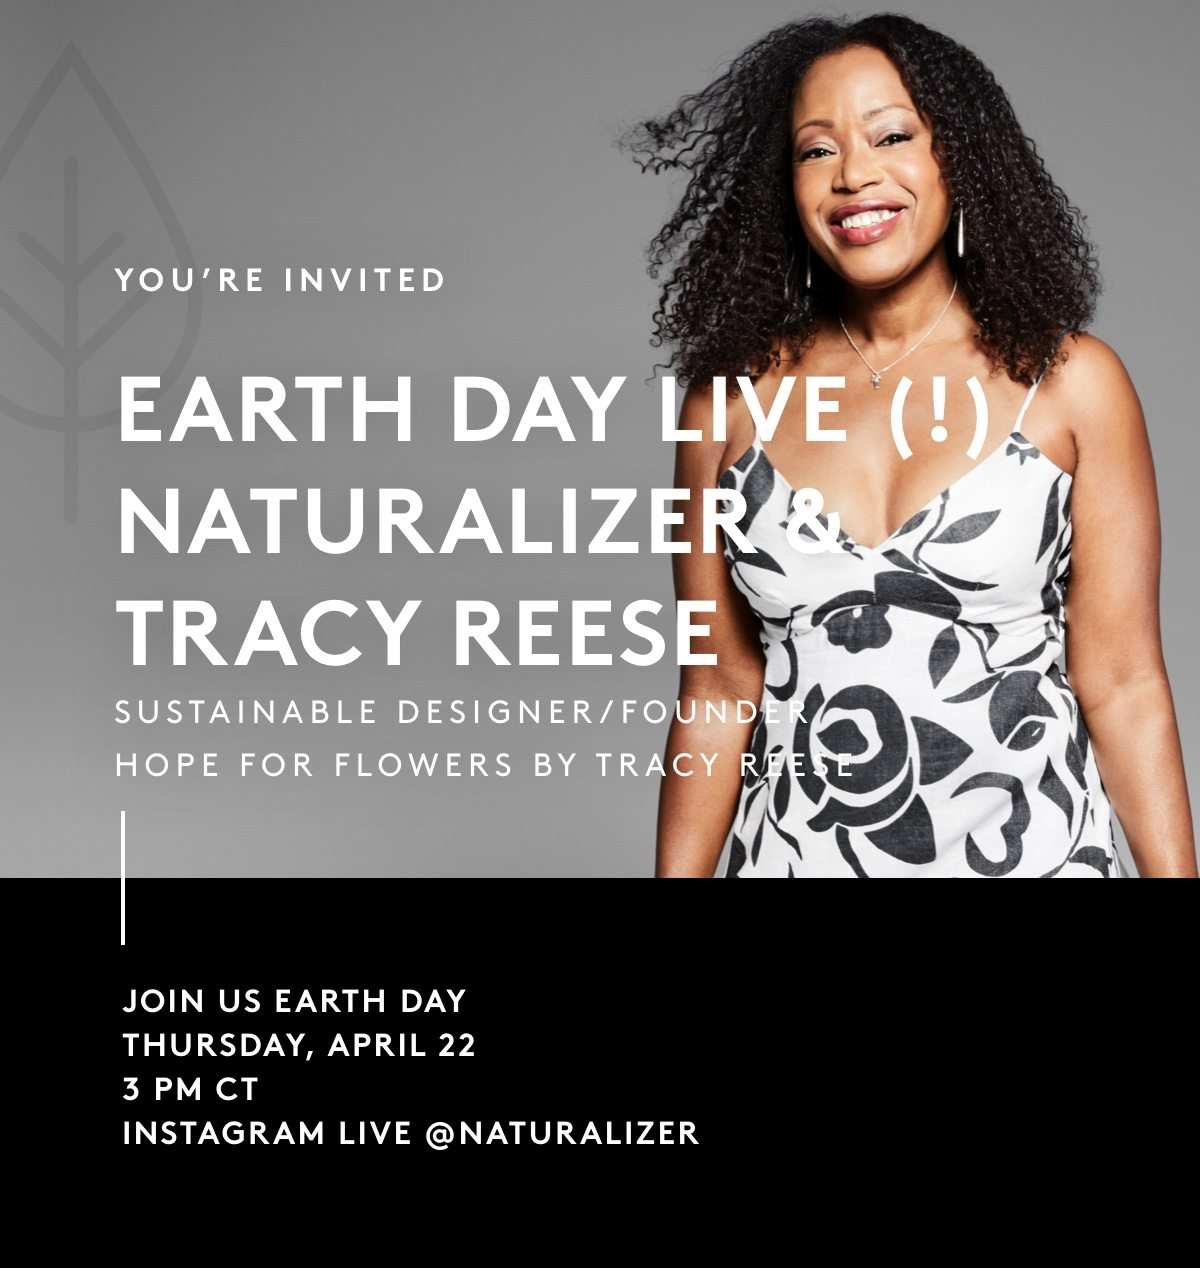 You're invited: Earth Day Live! Naturalizer & Tracy Reese, sustainable designer/founder / Hope for Flowers by Tracy Reese | Join us for Earth Day, Thursday, April 22 3pm CT. Instagram live @Naturalizer